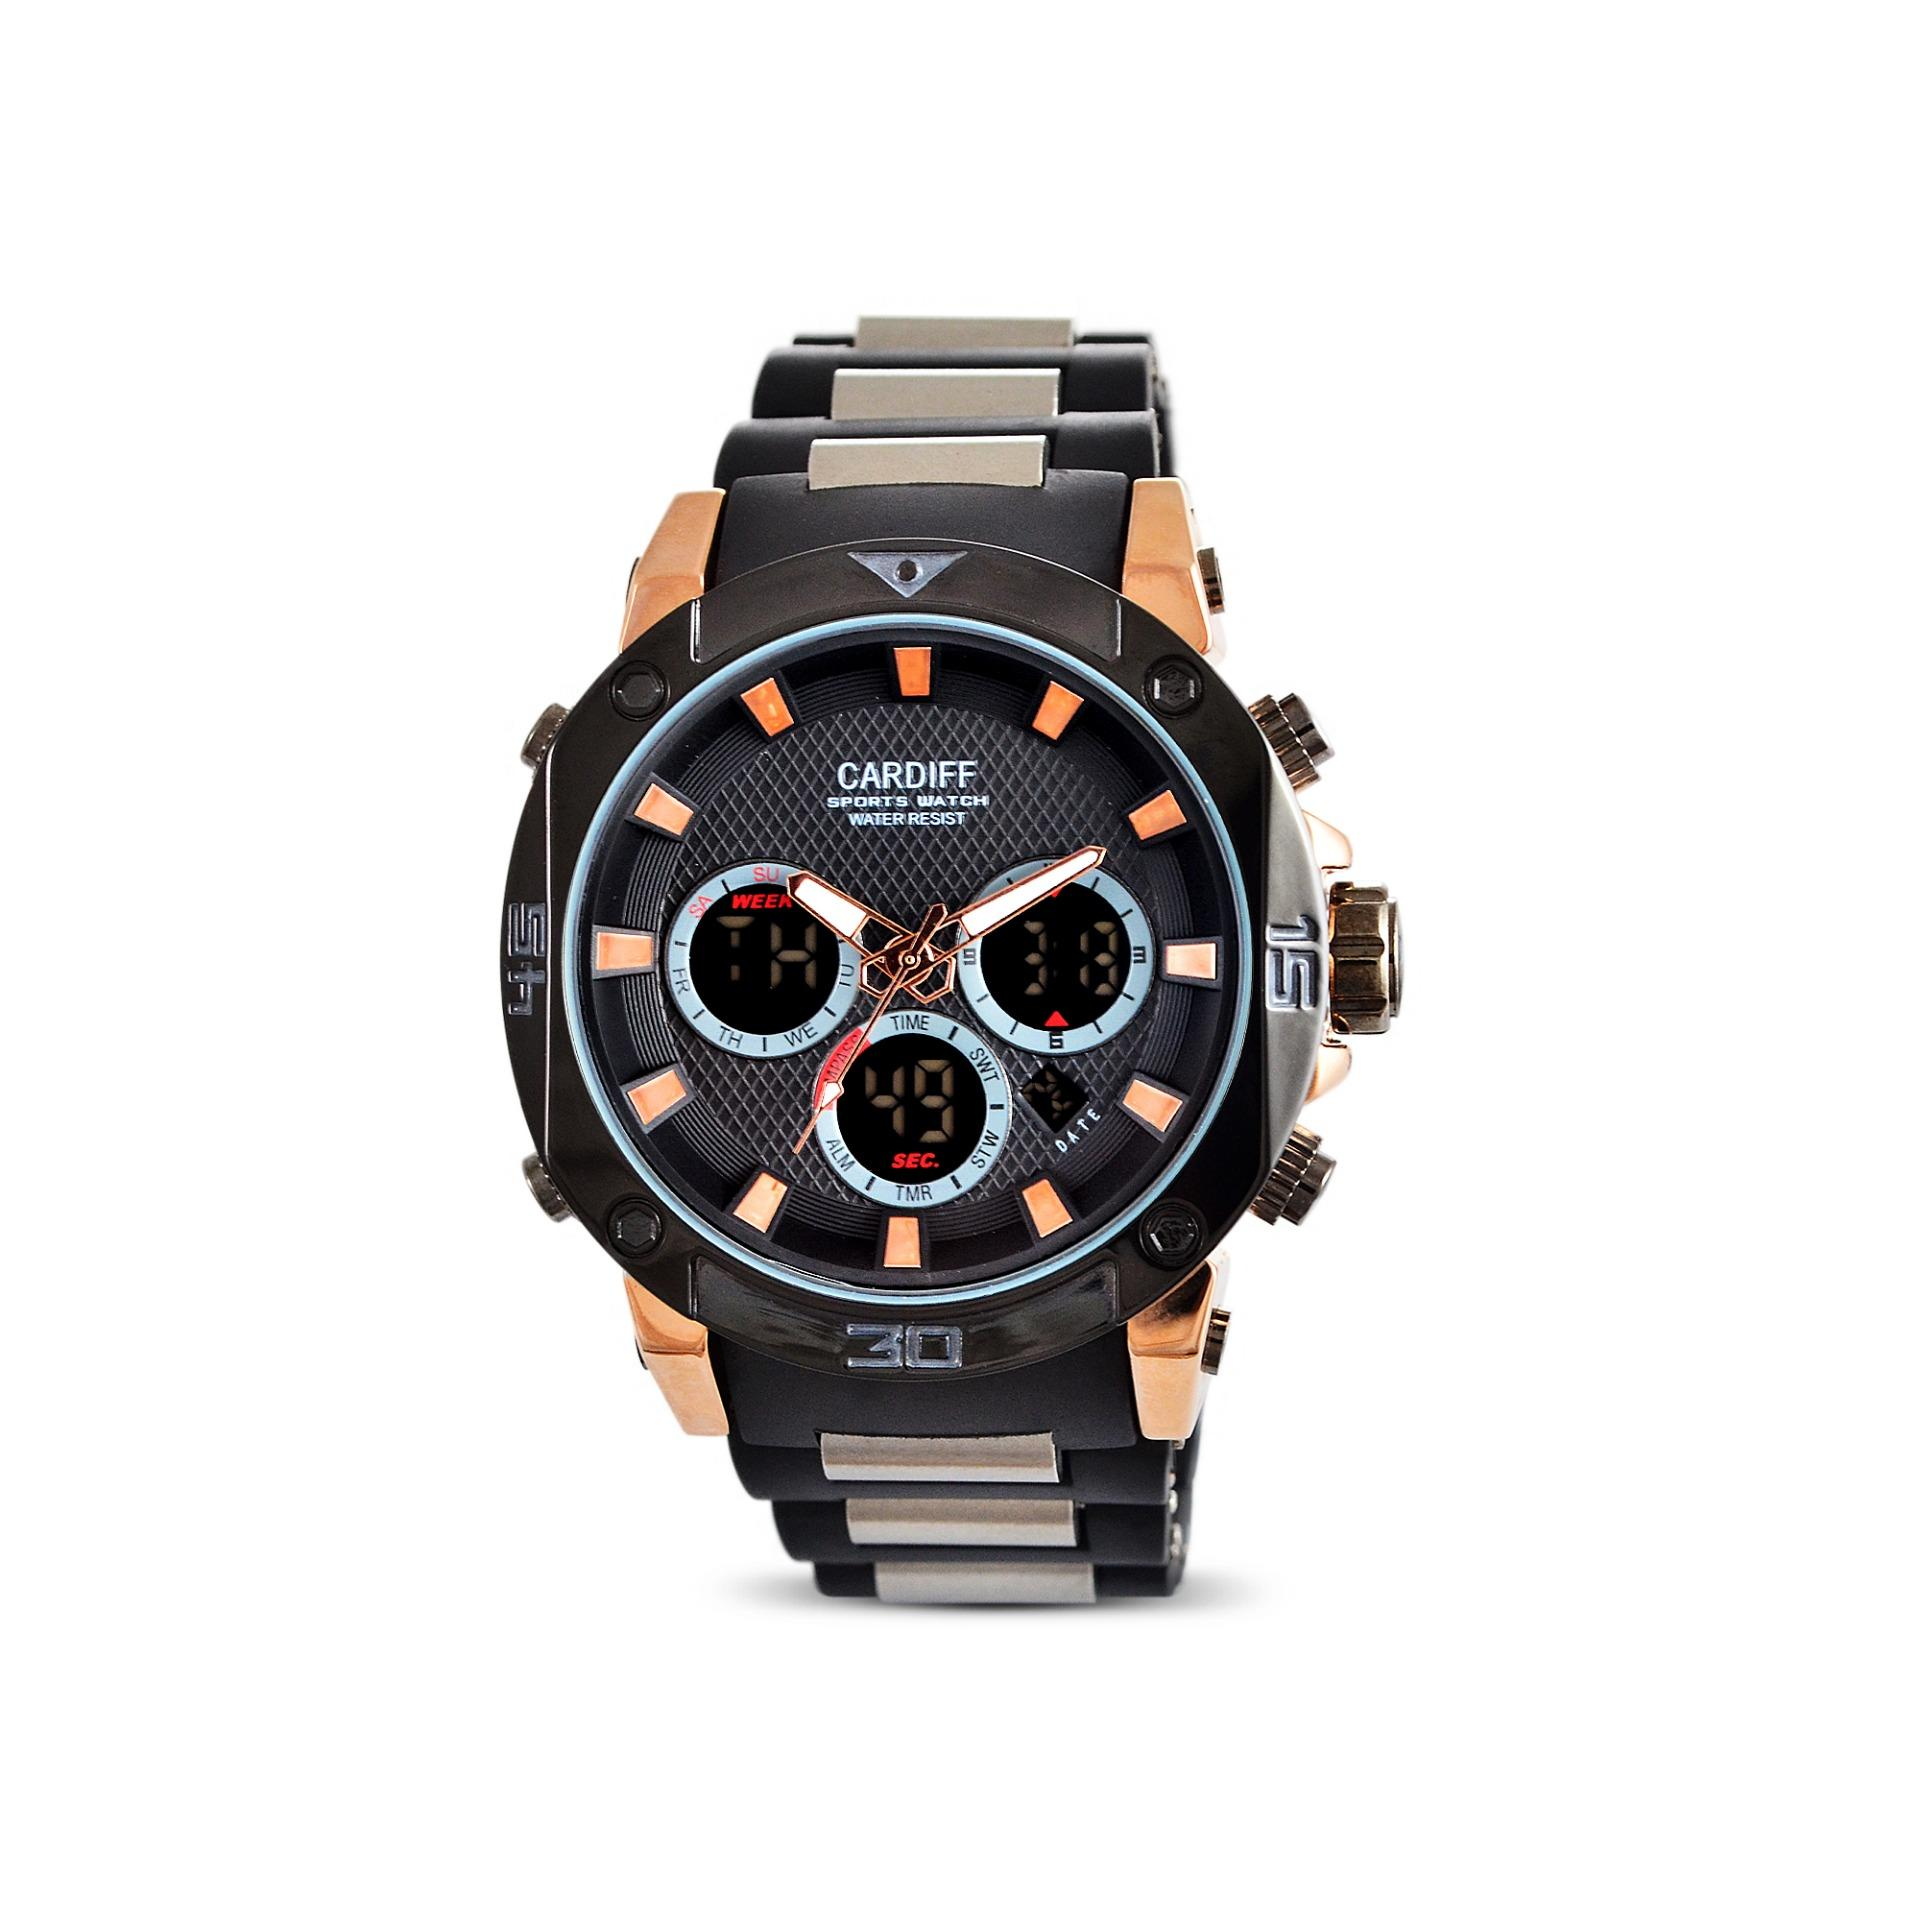 JAM TANGAN ORIGINAL CARDIFF  DT 8135 PU - BLACK GOLD ANTI AIR BERGARANSI 1 TAHUN